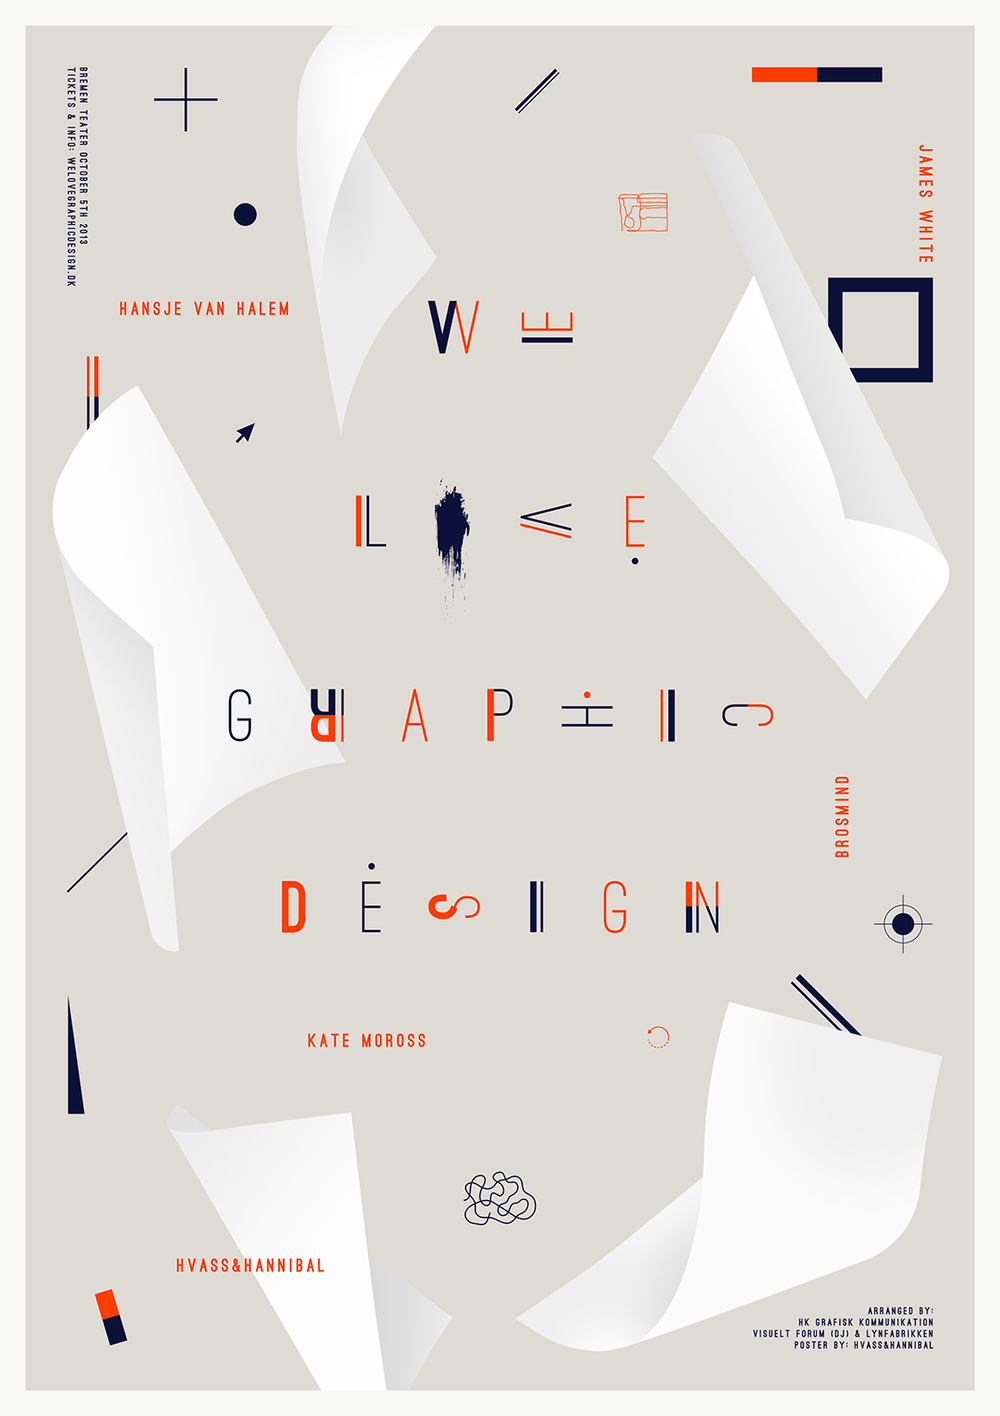 Hvass&Hannibal | A1 poster (and identity) for We Love Graphic Design